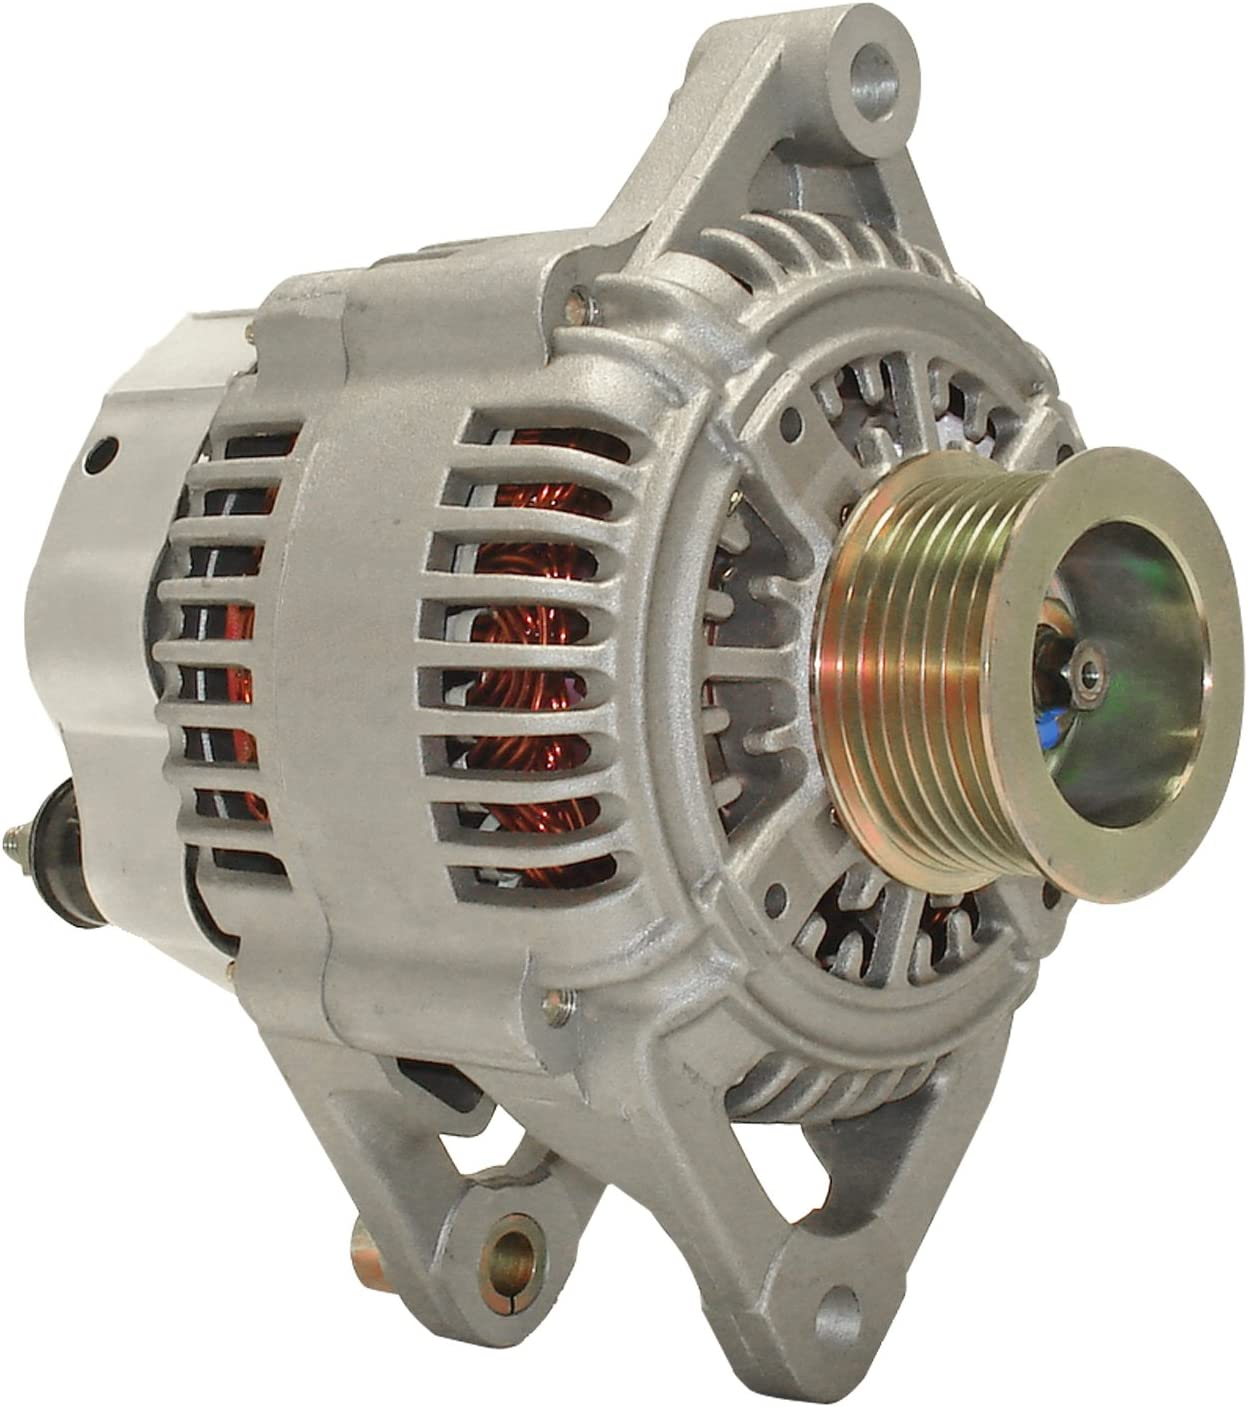 Remanufactured ACDelco 334-2923A Professional Alternator